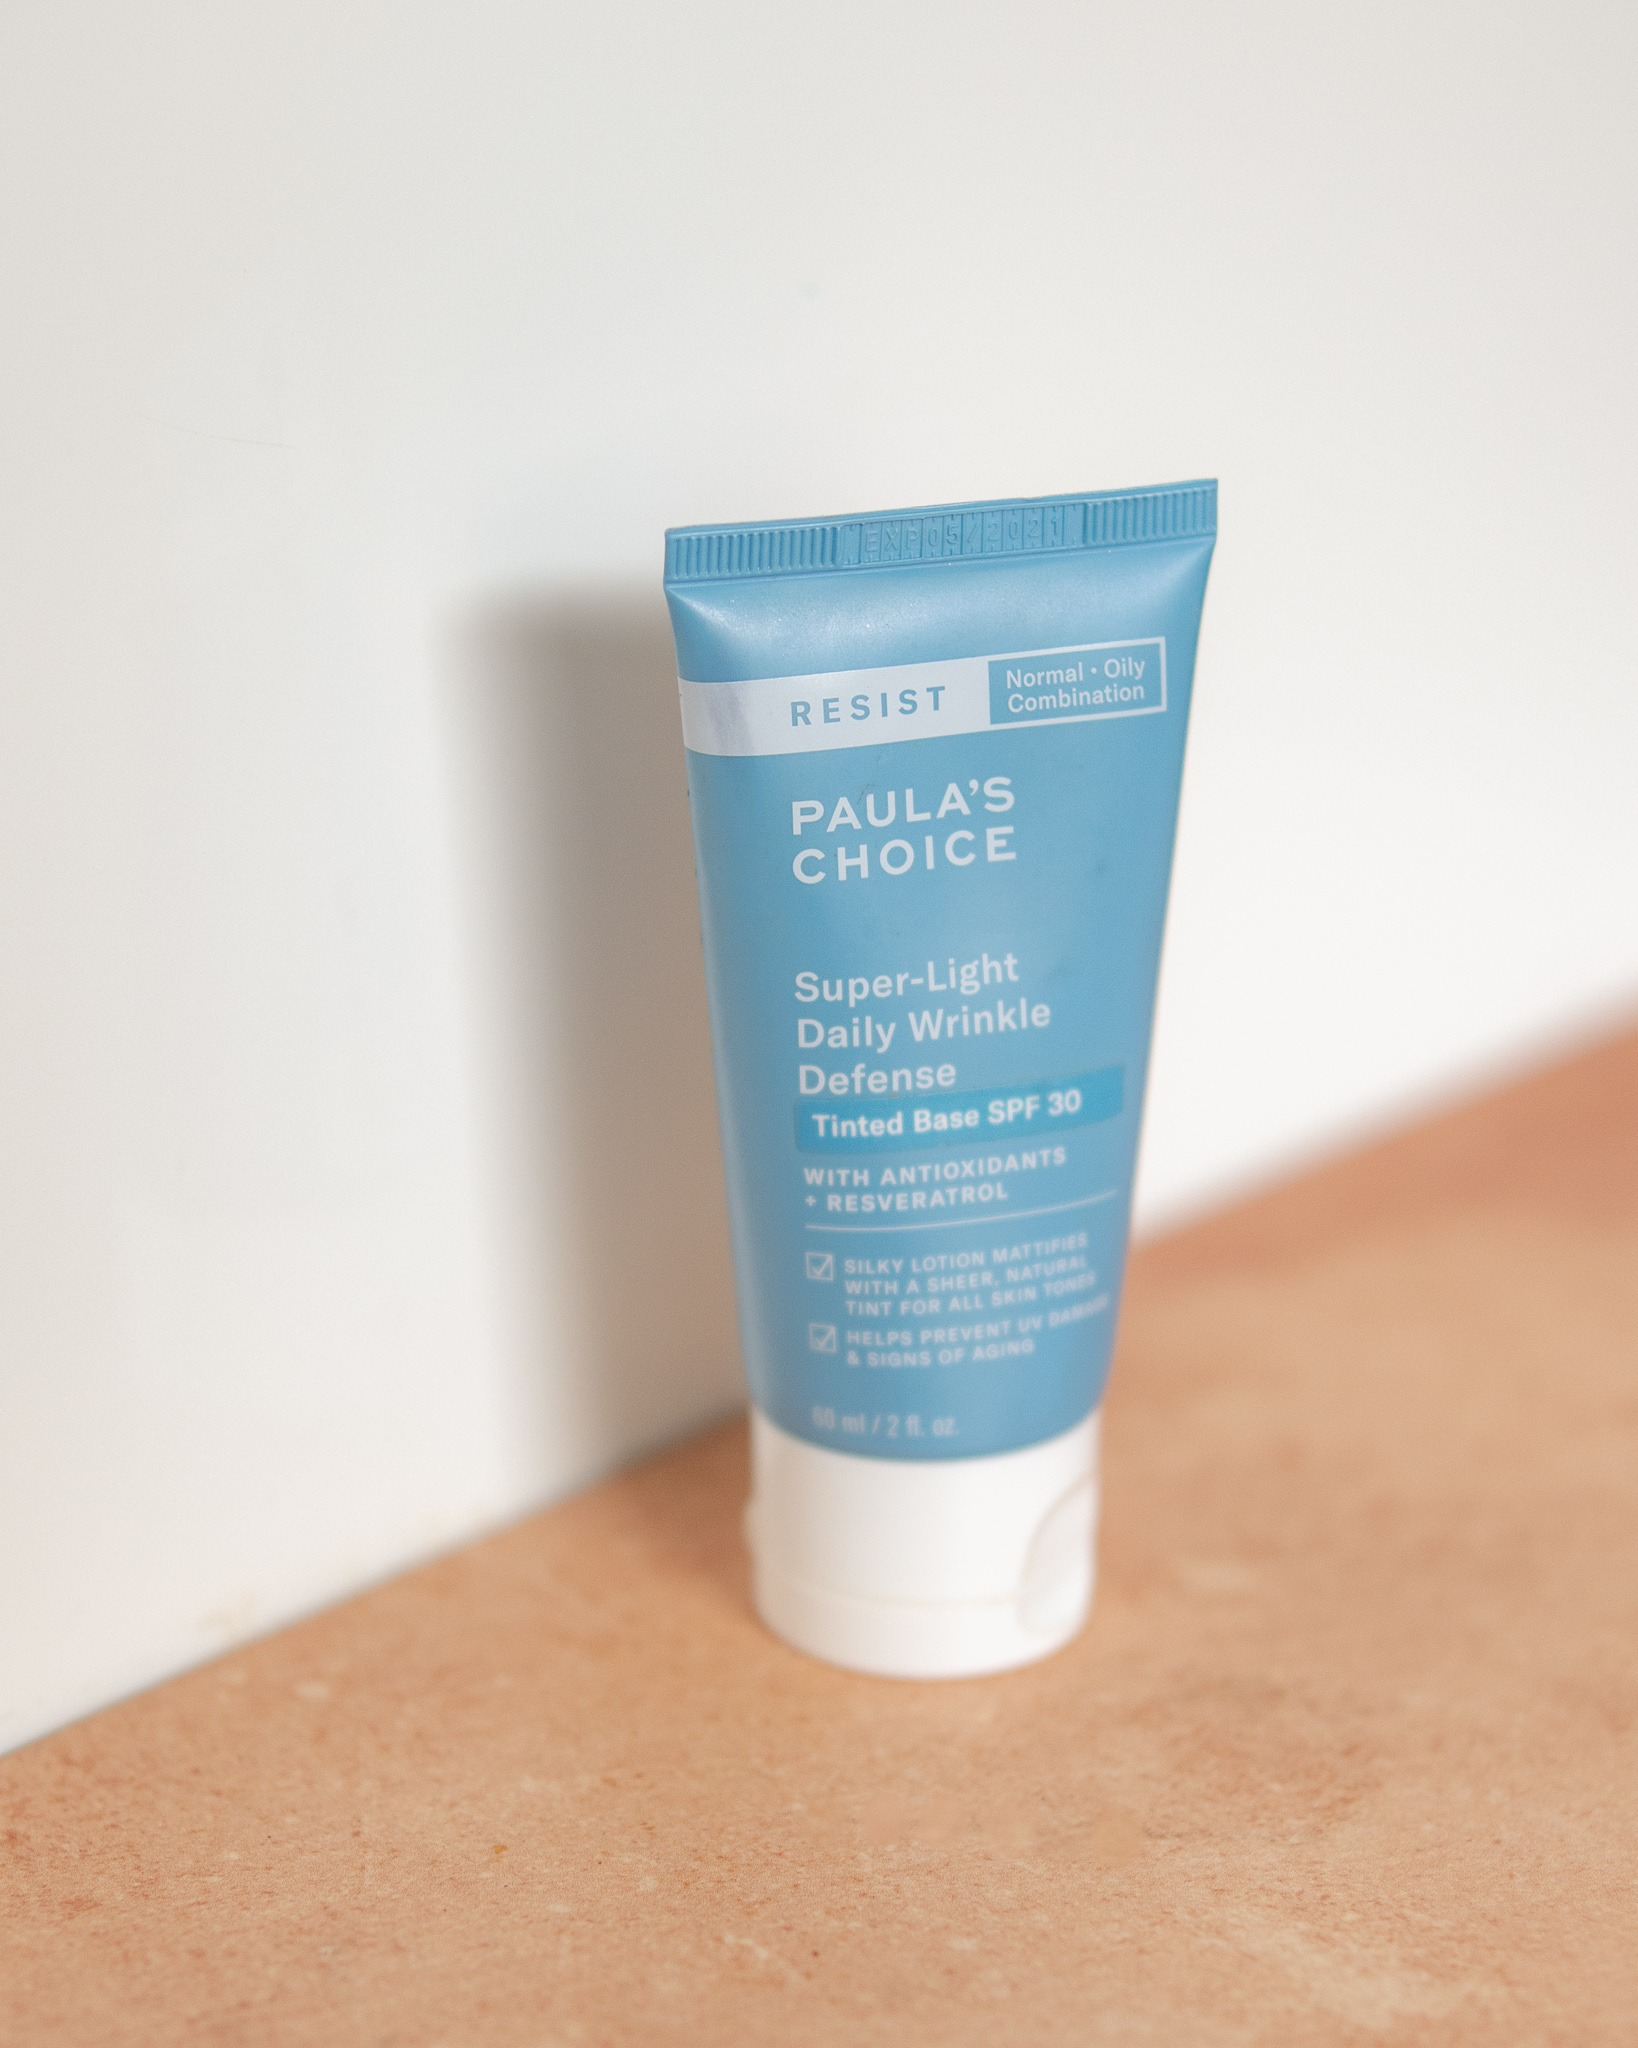 paula's choice super-light wrinkle defense spf30 zinc sunscreen